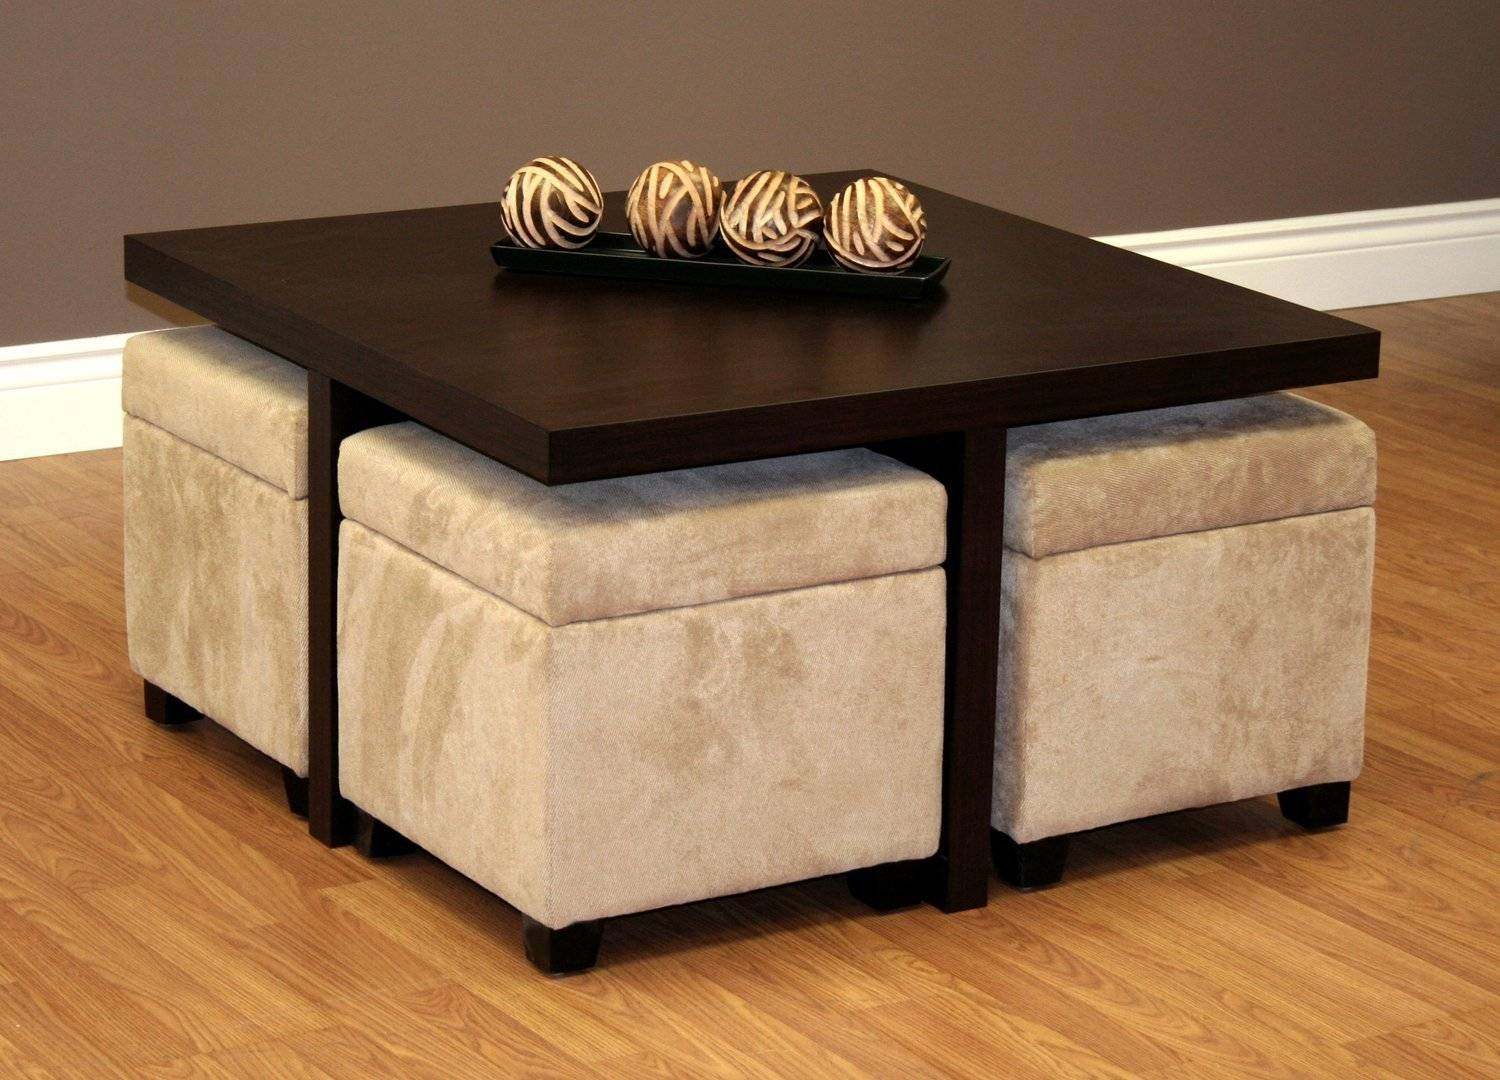 Crestfield Dark Brown Coffee Table Storage Ottoman Set | Coffee regarding Brown Leather Ottoman Coffee Tables With Storages (Image 18 of 30)